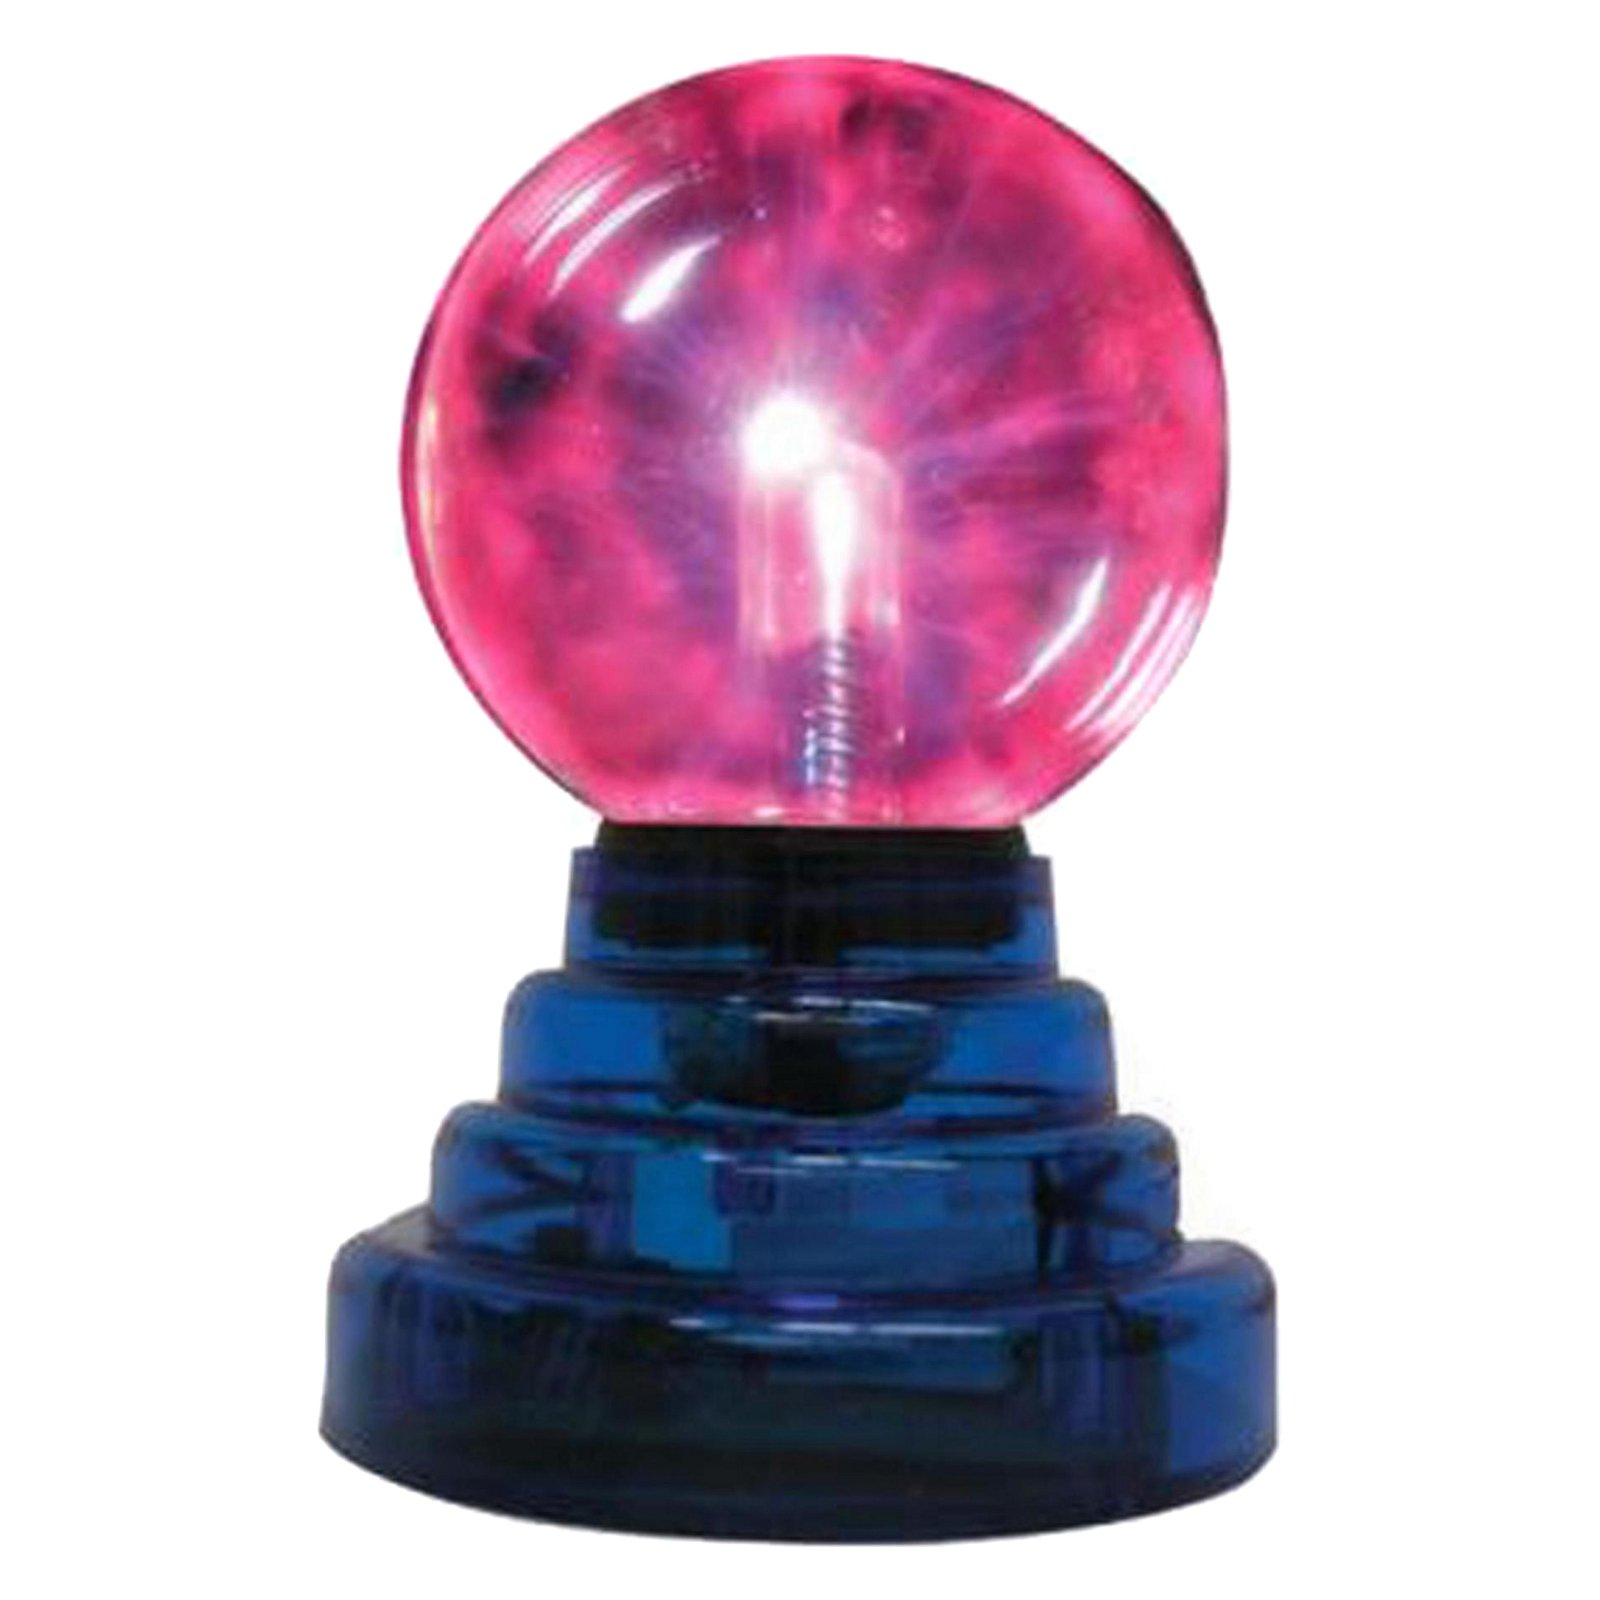 "Creative Motion 3"" Mini Plasma Ball, Black. Lighting responds to the sound and Music. Lightening to your fingertips. Product Size: 4.5x7 x 4.5"